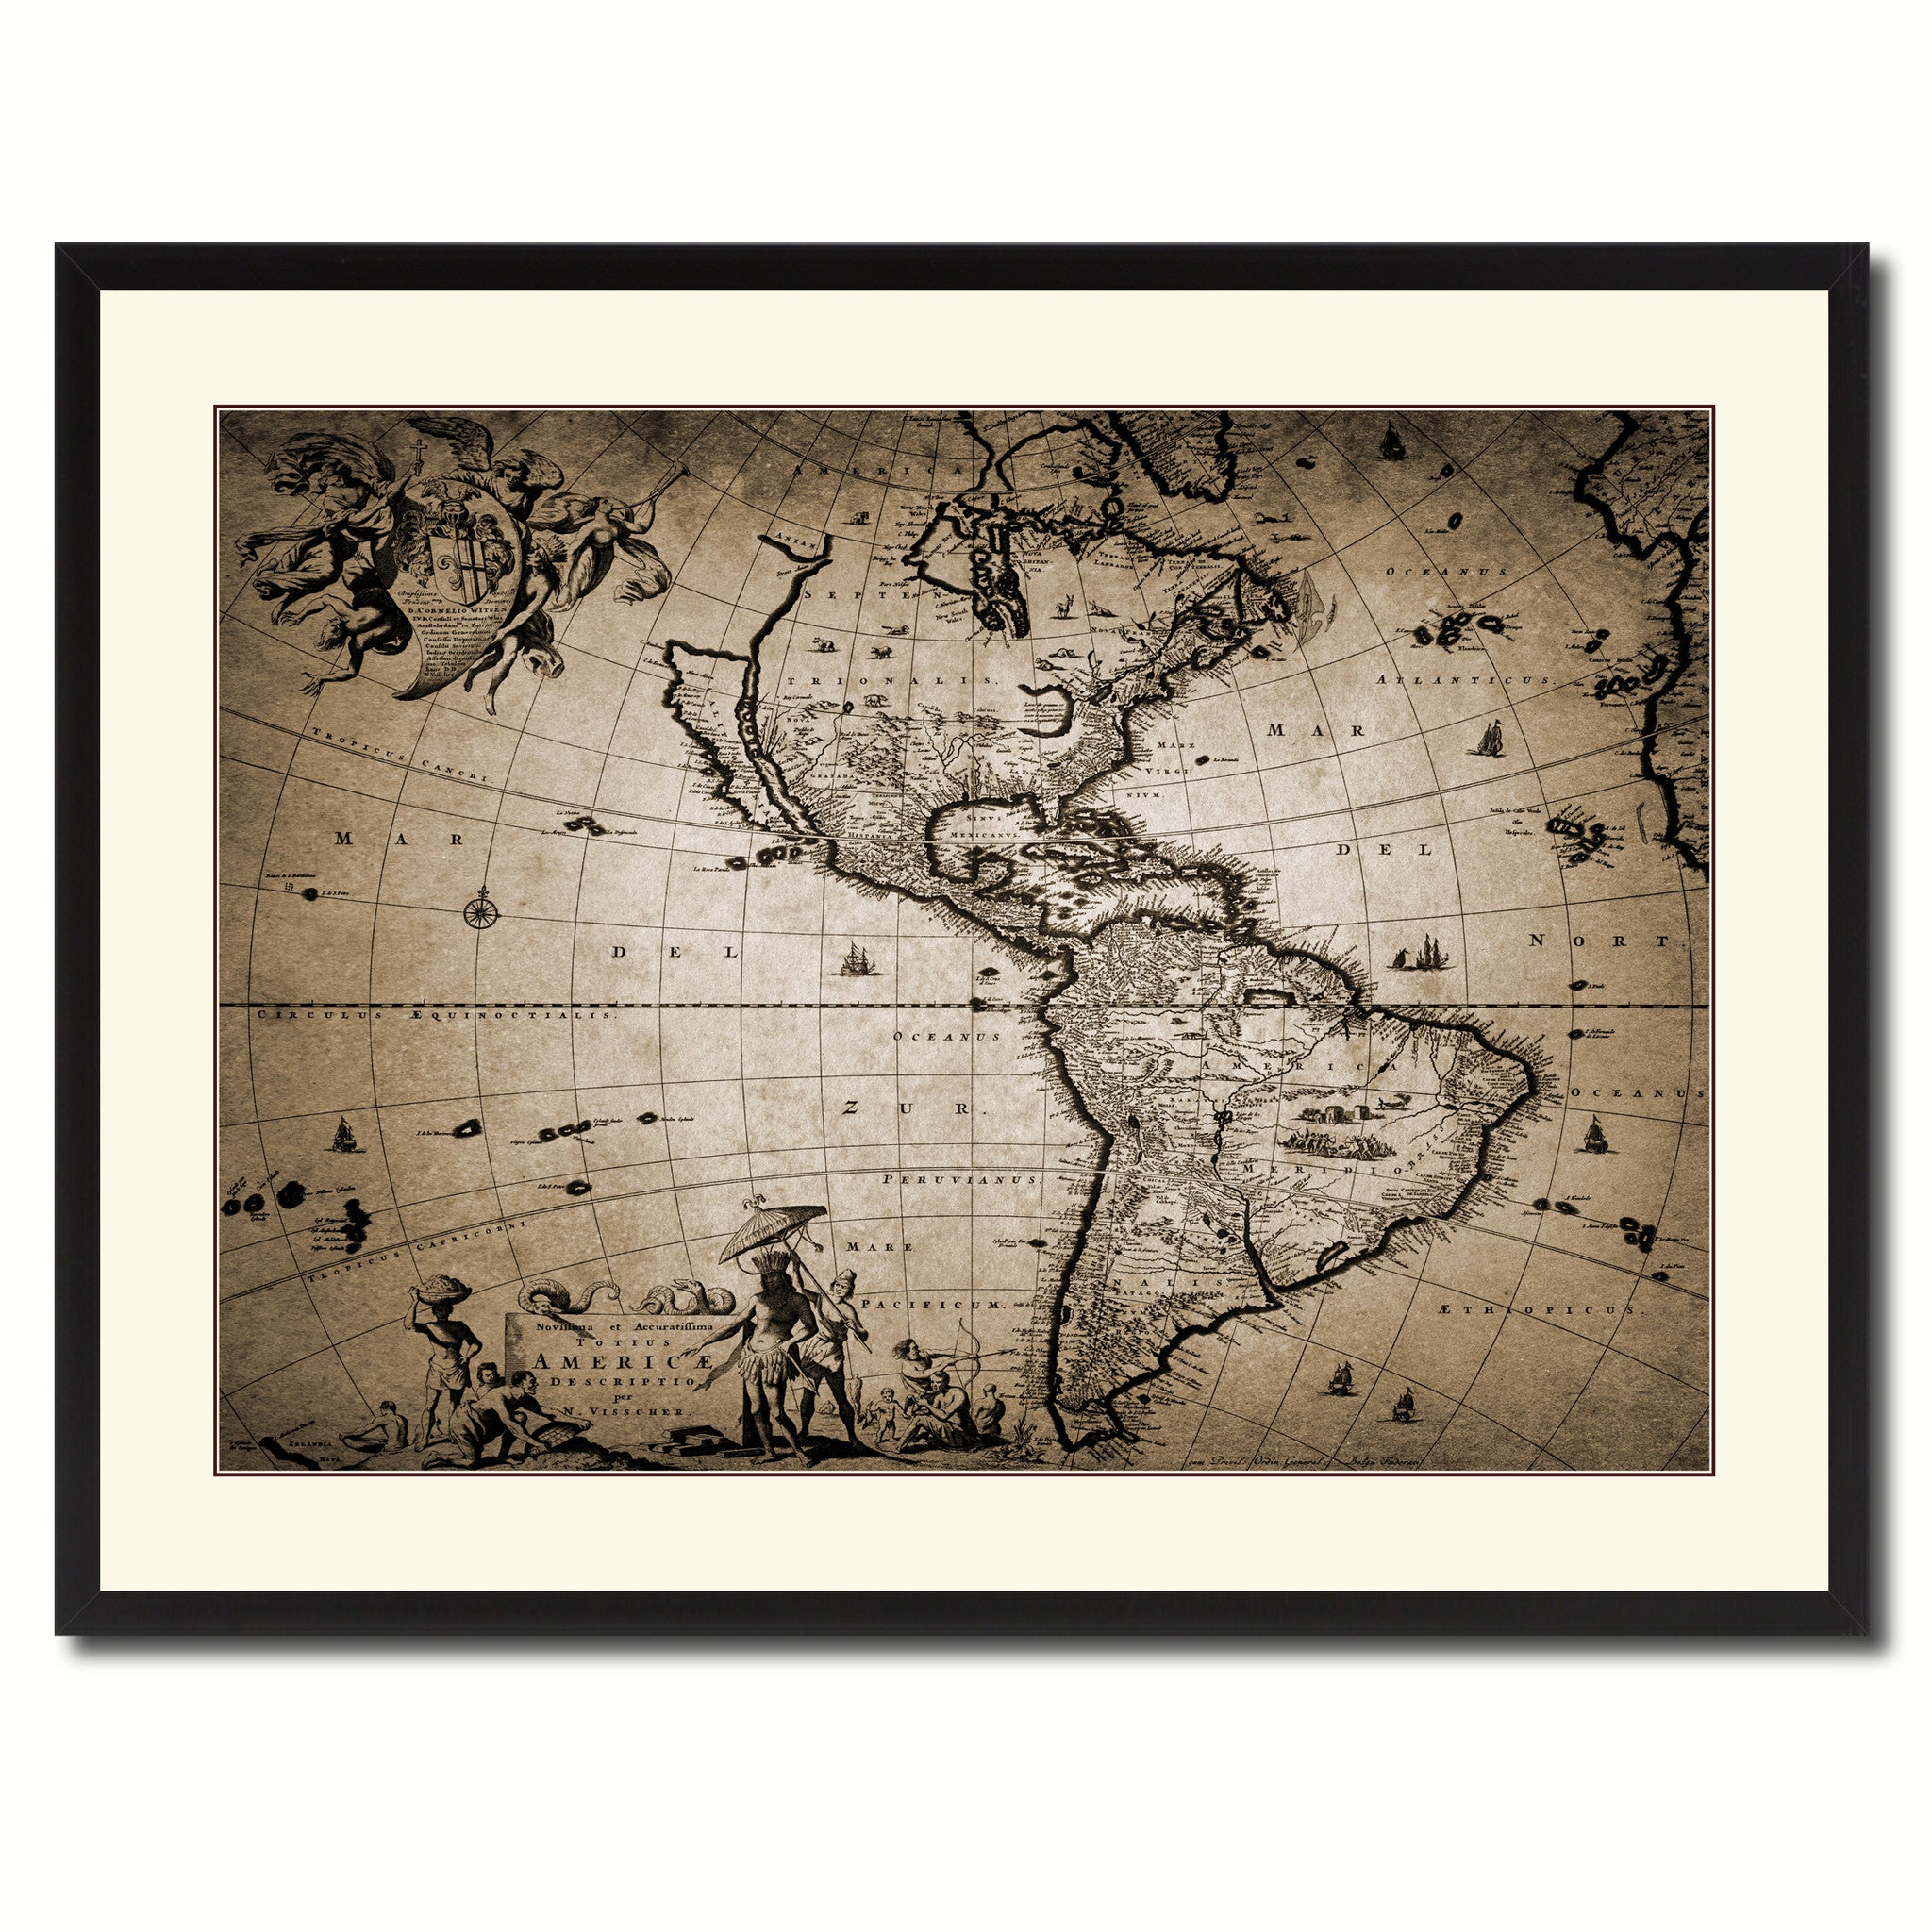 America Vintage Sepia Map Canvas Print, Picture Frame Gifts Home Decor Wall Art Decoration